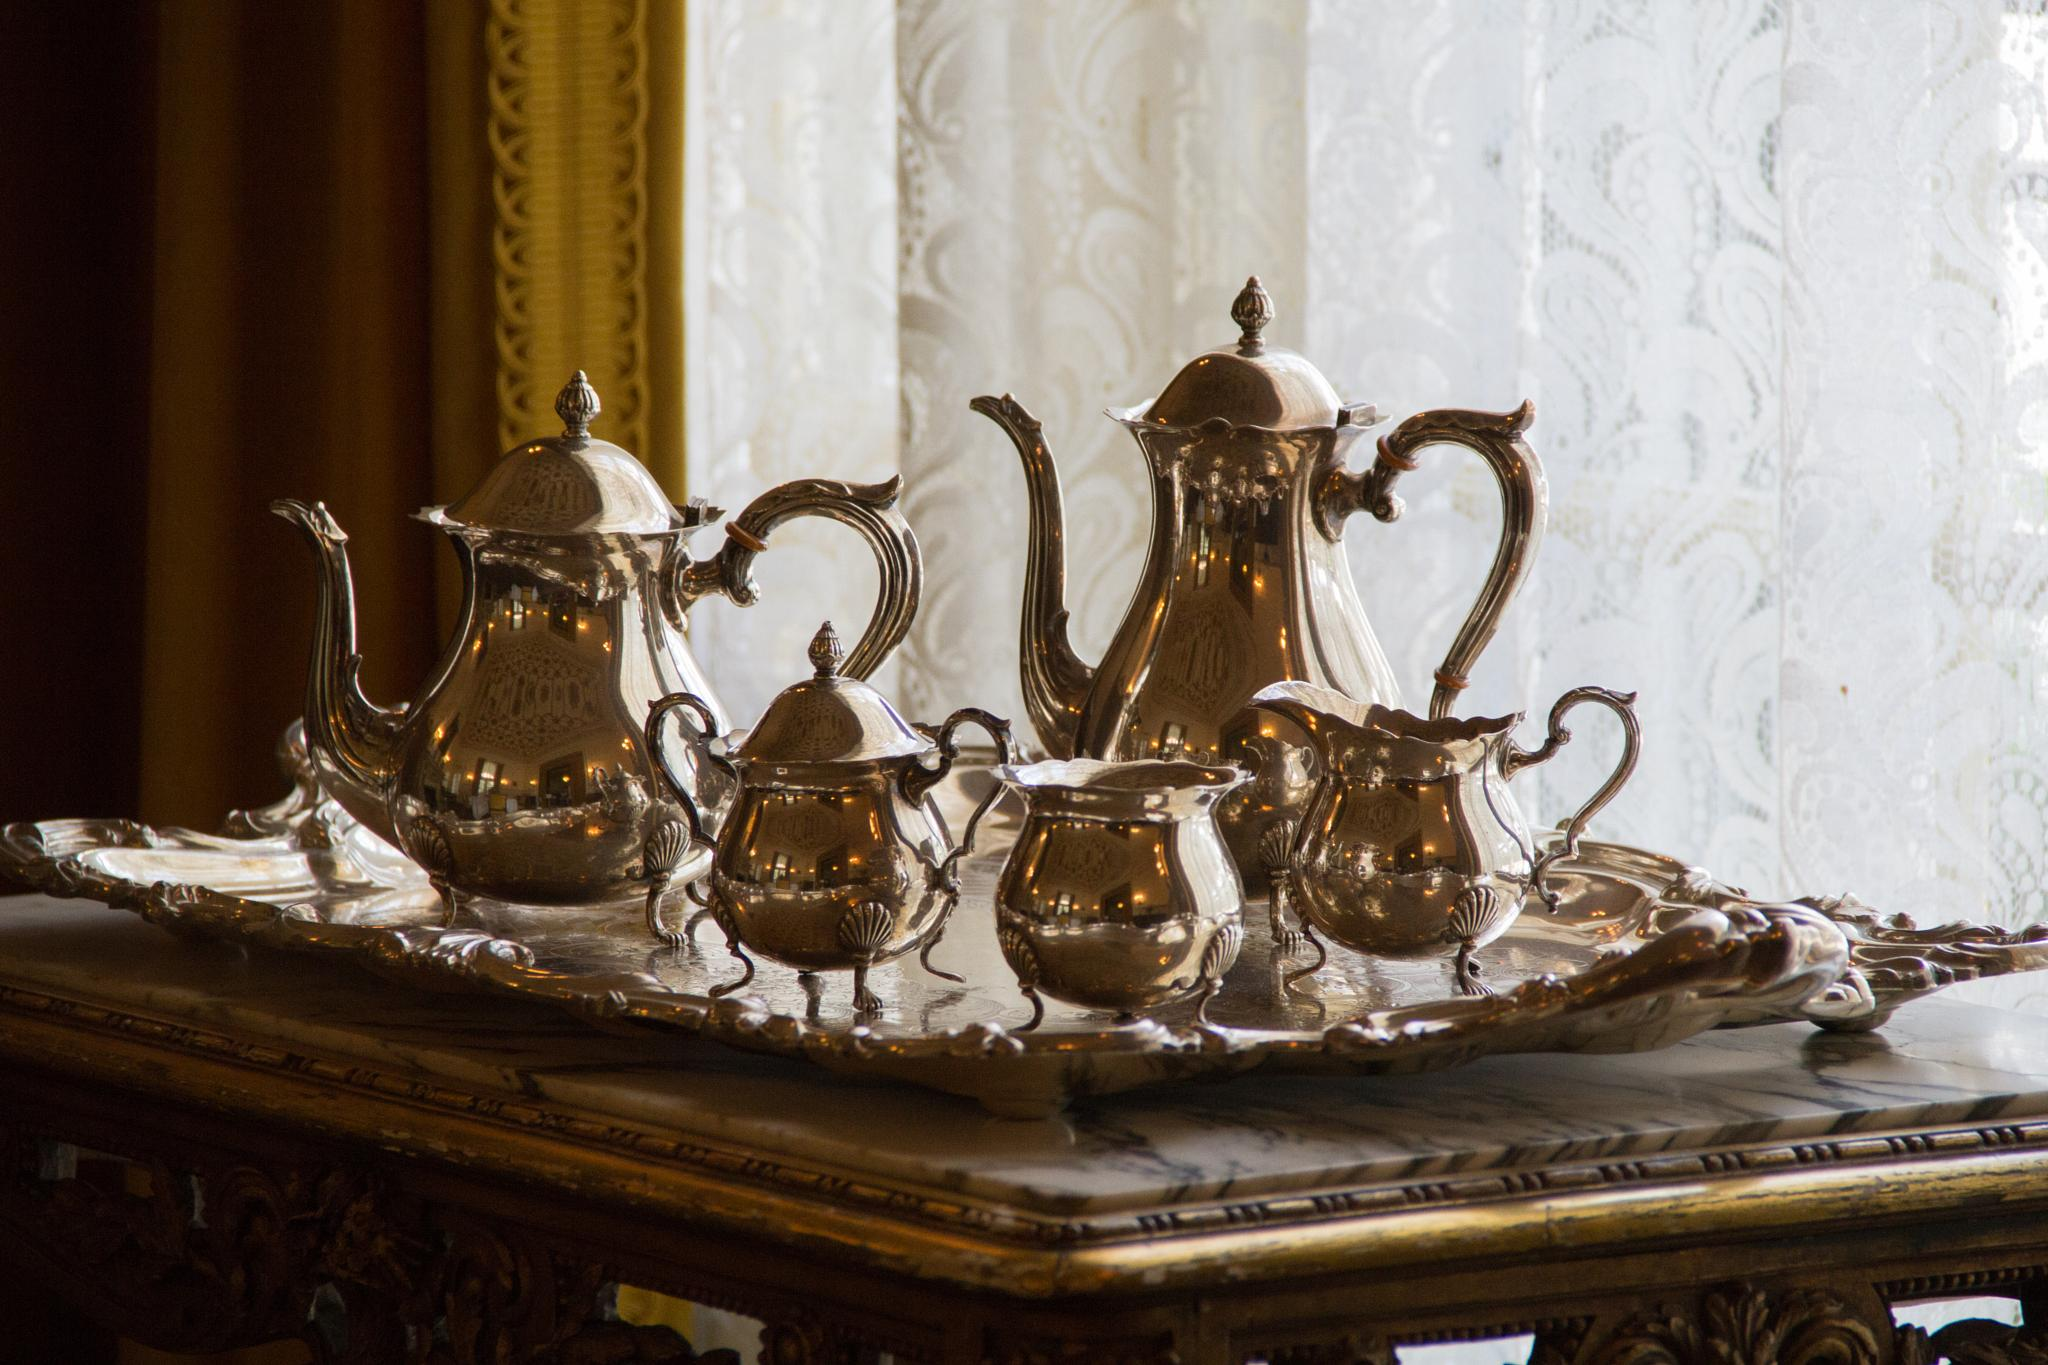 Tea Time by Laurence (Sam) Warriner